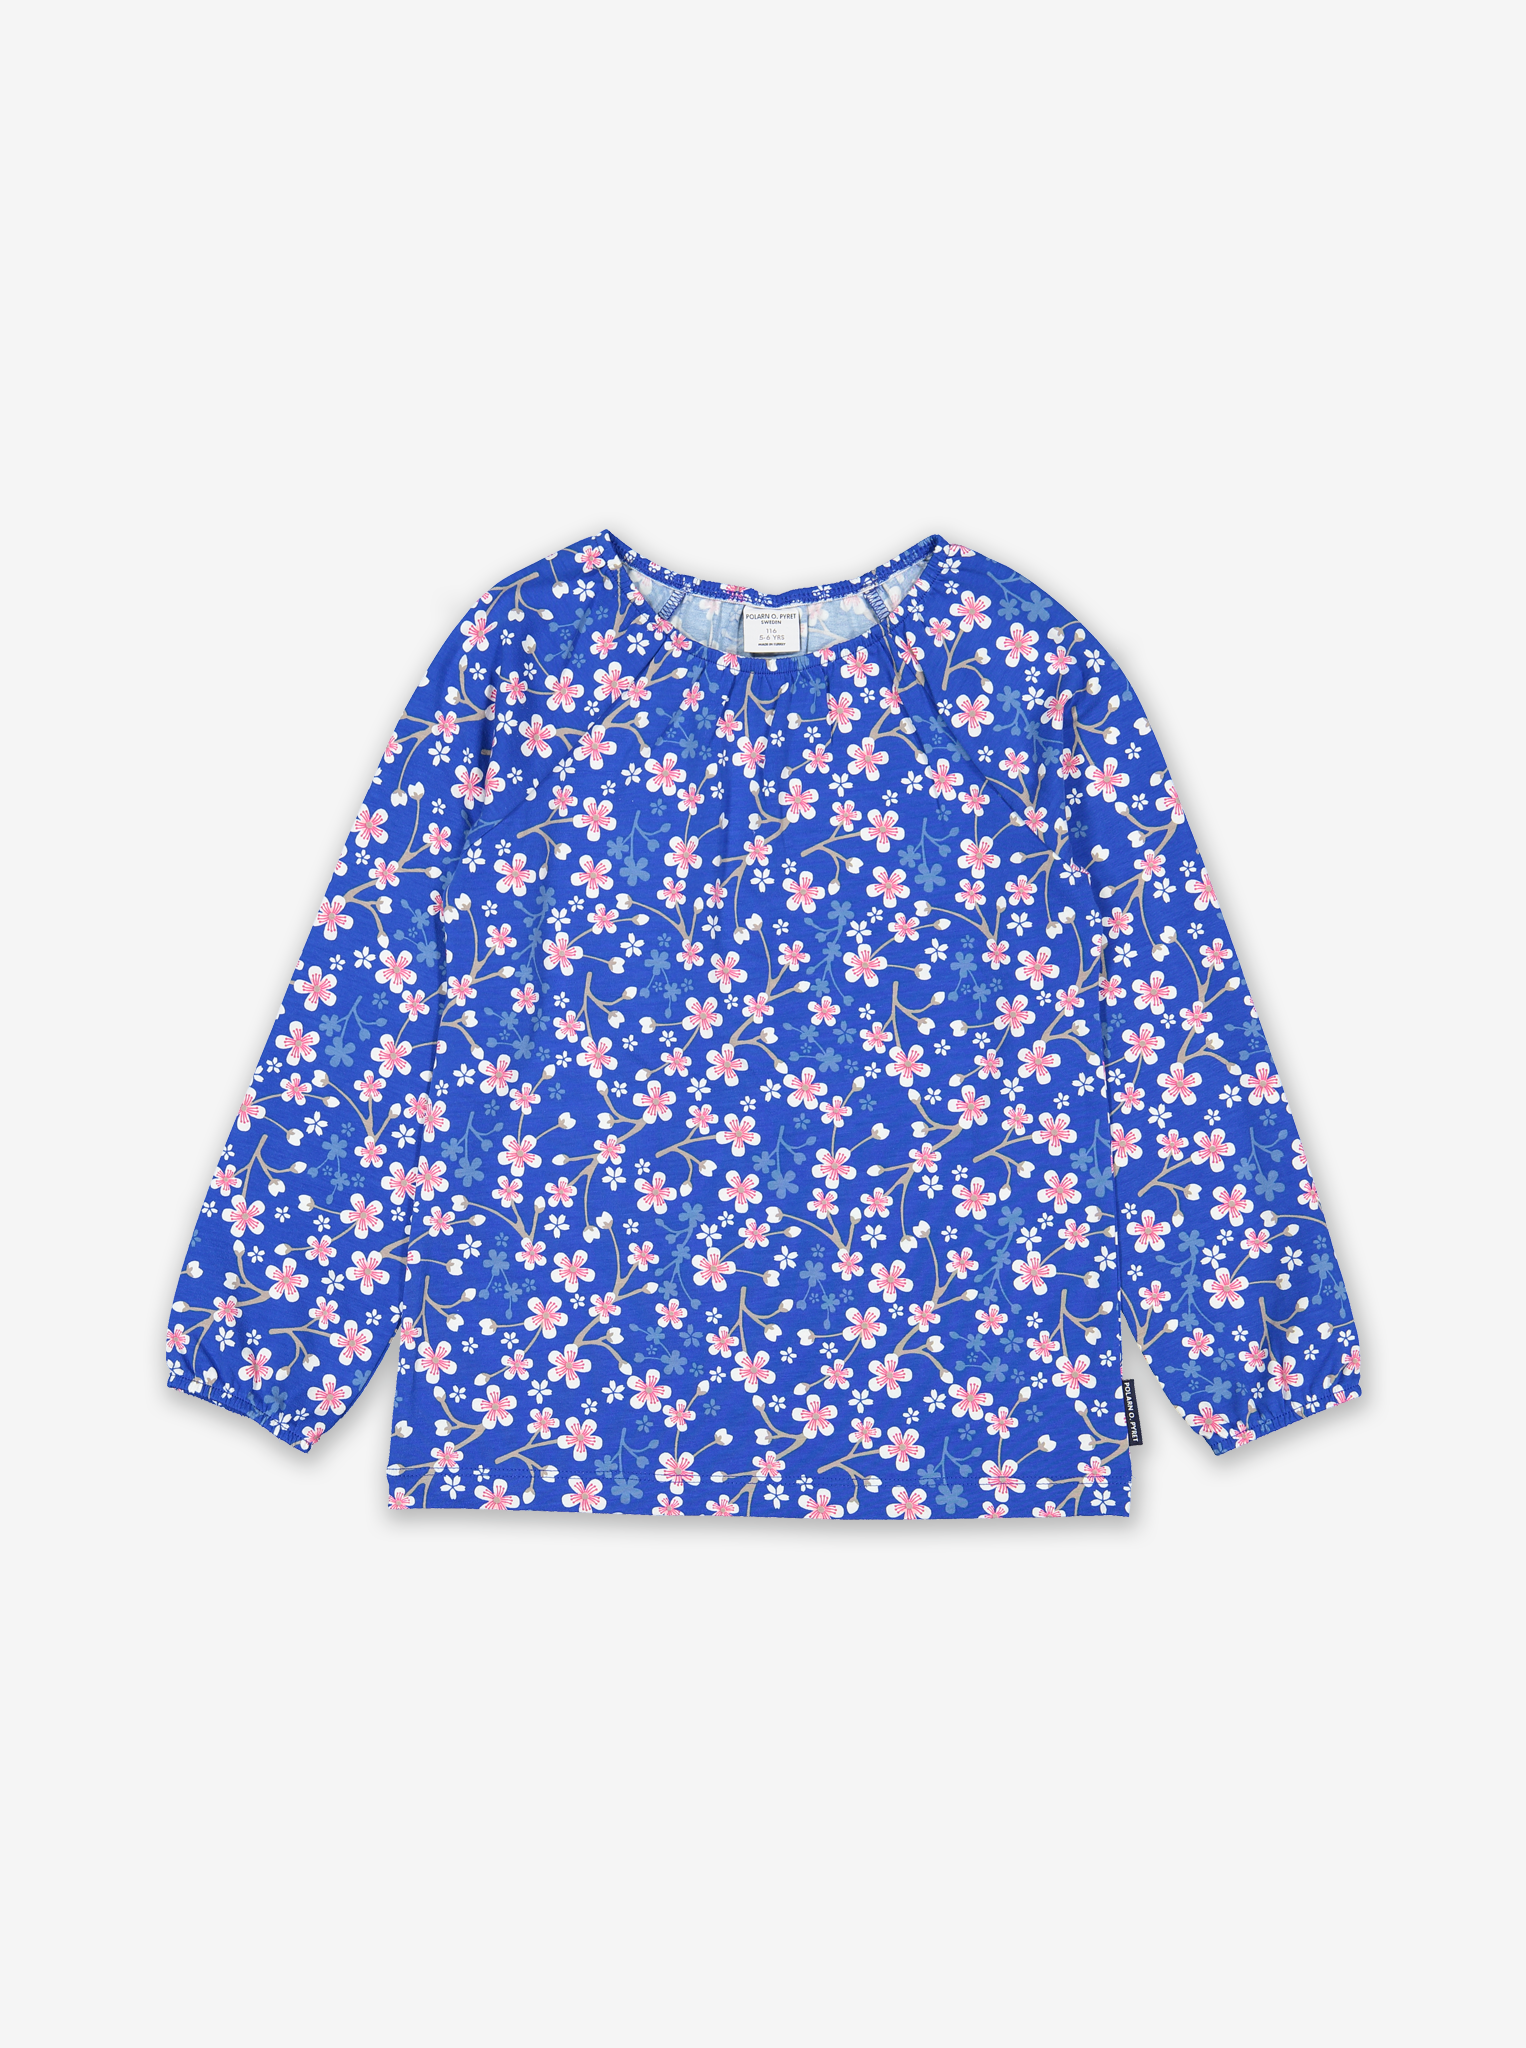 Blossom Print Kids Top-Girl-1-6y-Blue